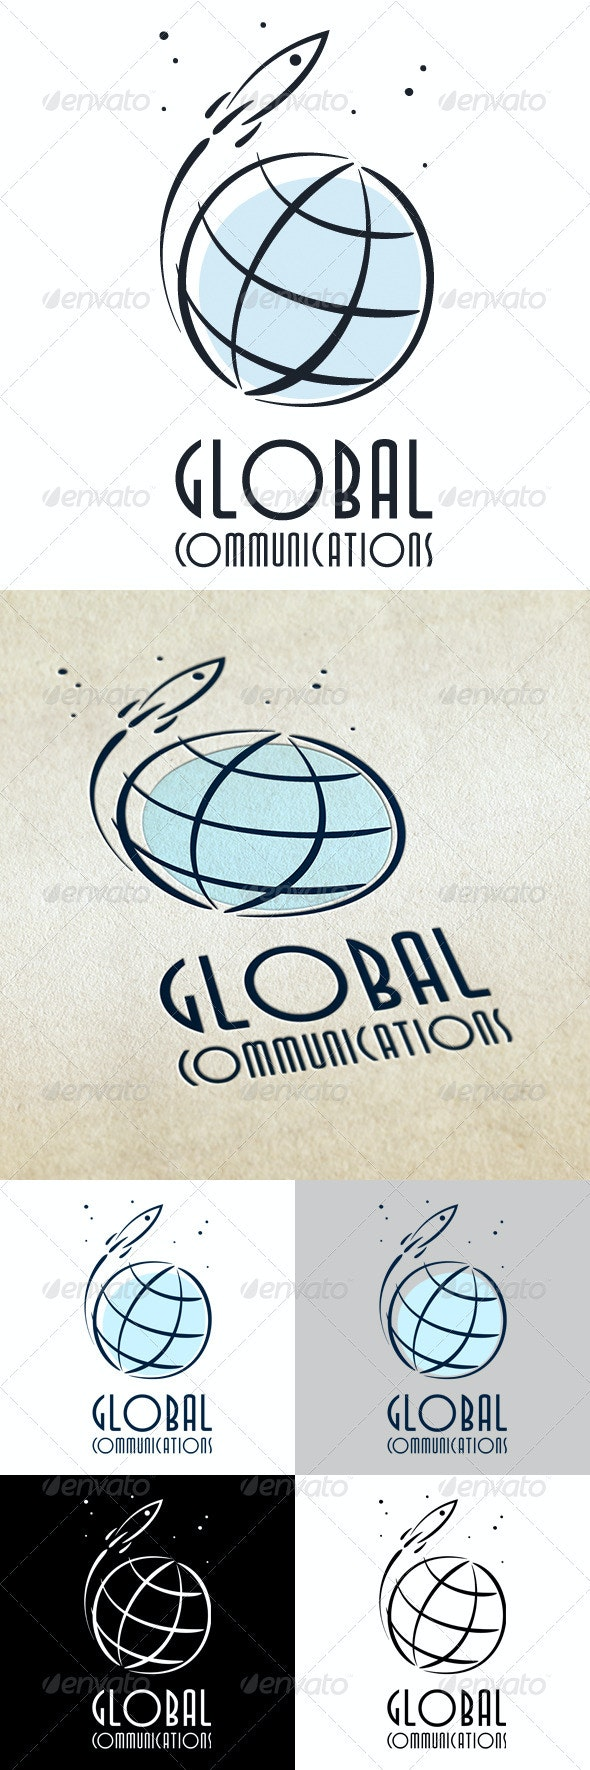 Global Communications - Vector Abstract